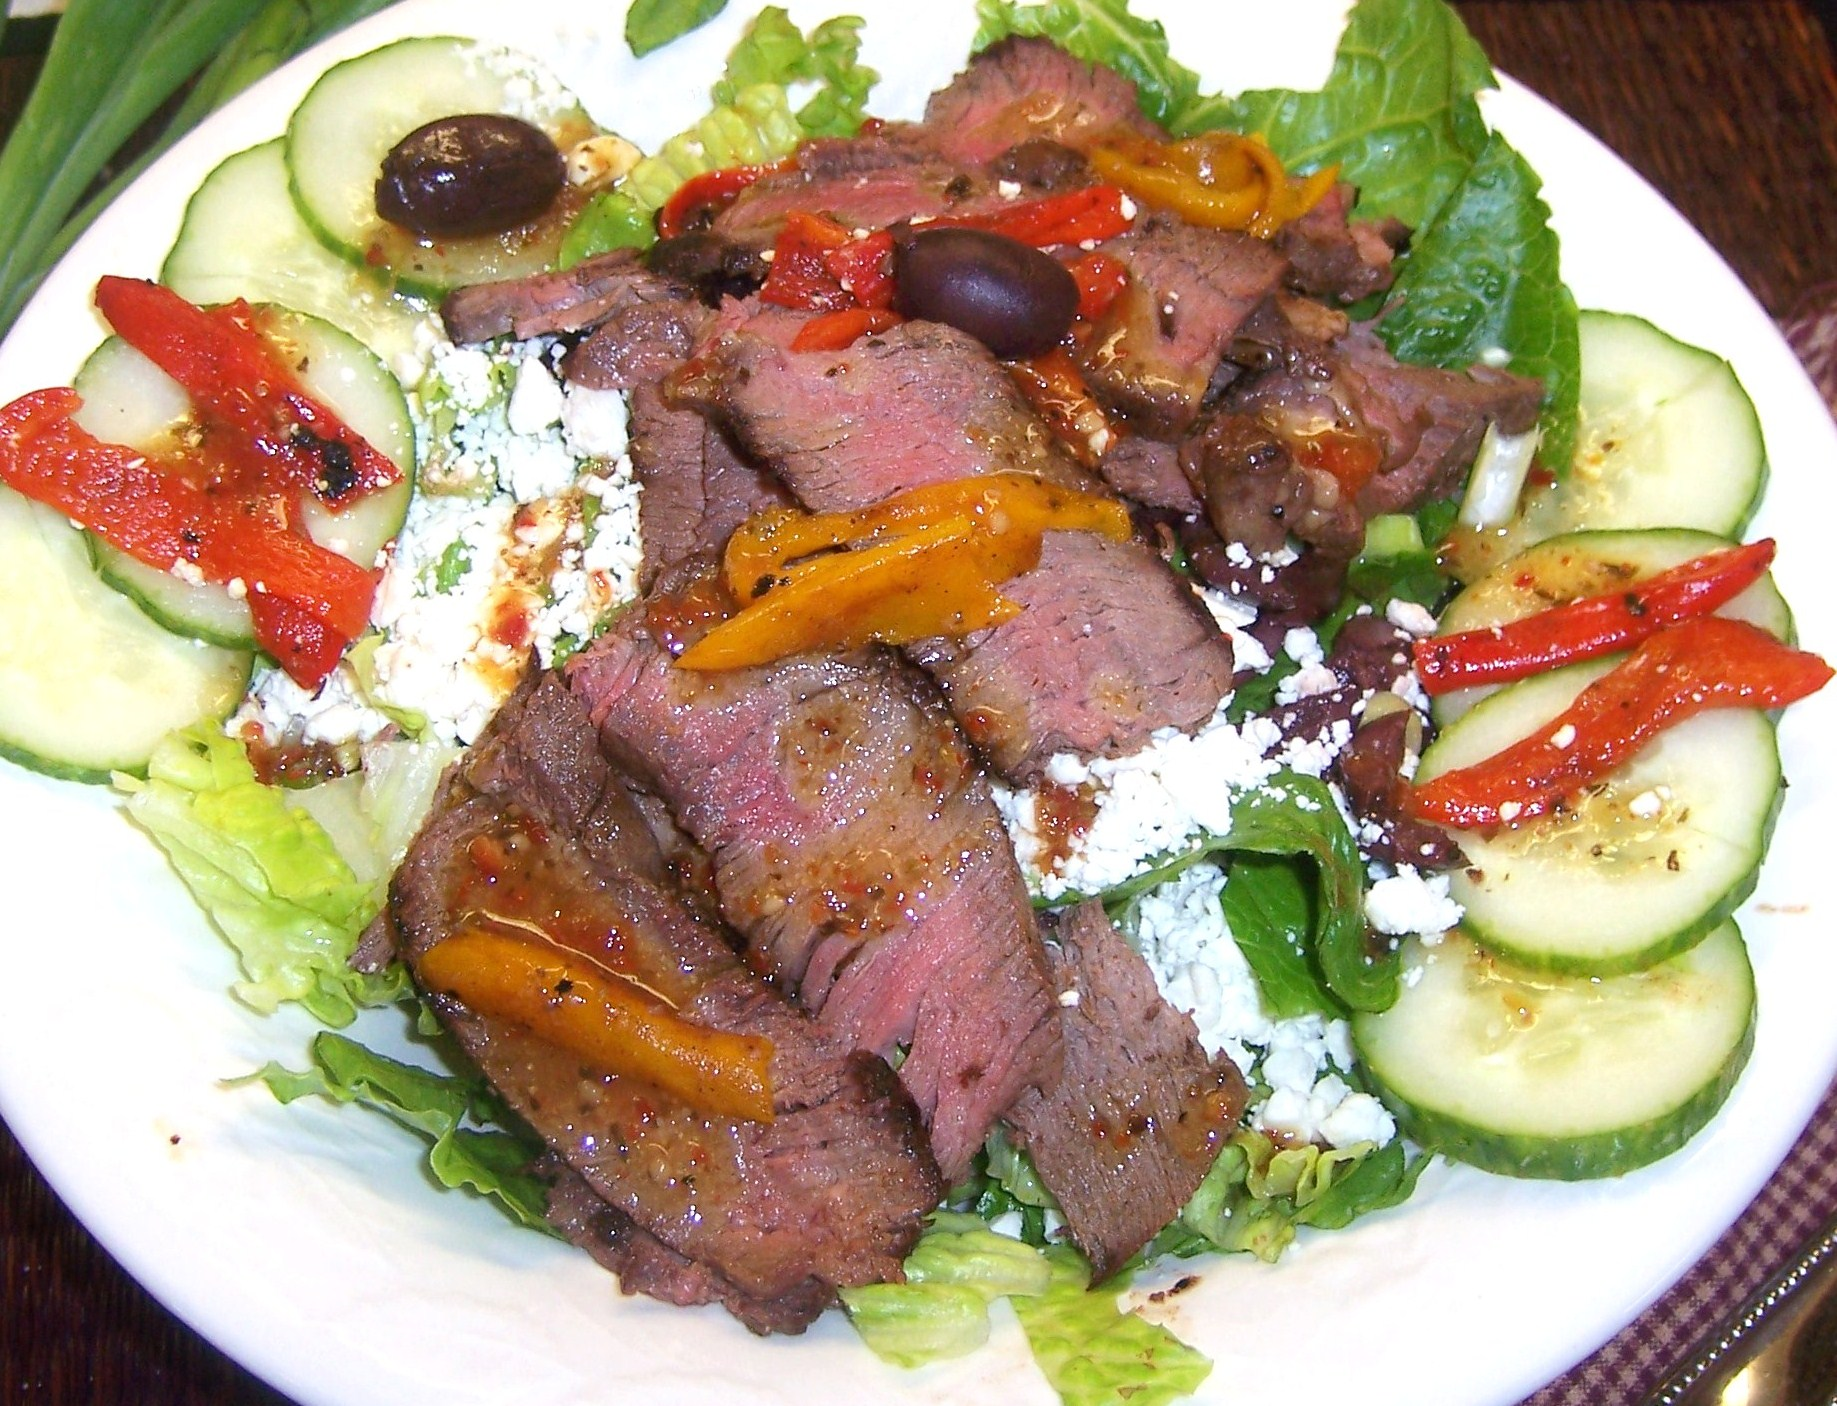 Greek Steak Salad with Sun Dried Tomato Vinaigrette | Enjoy Fun Family ...